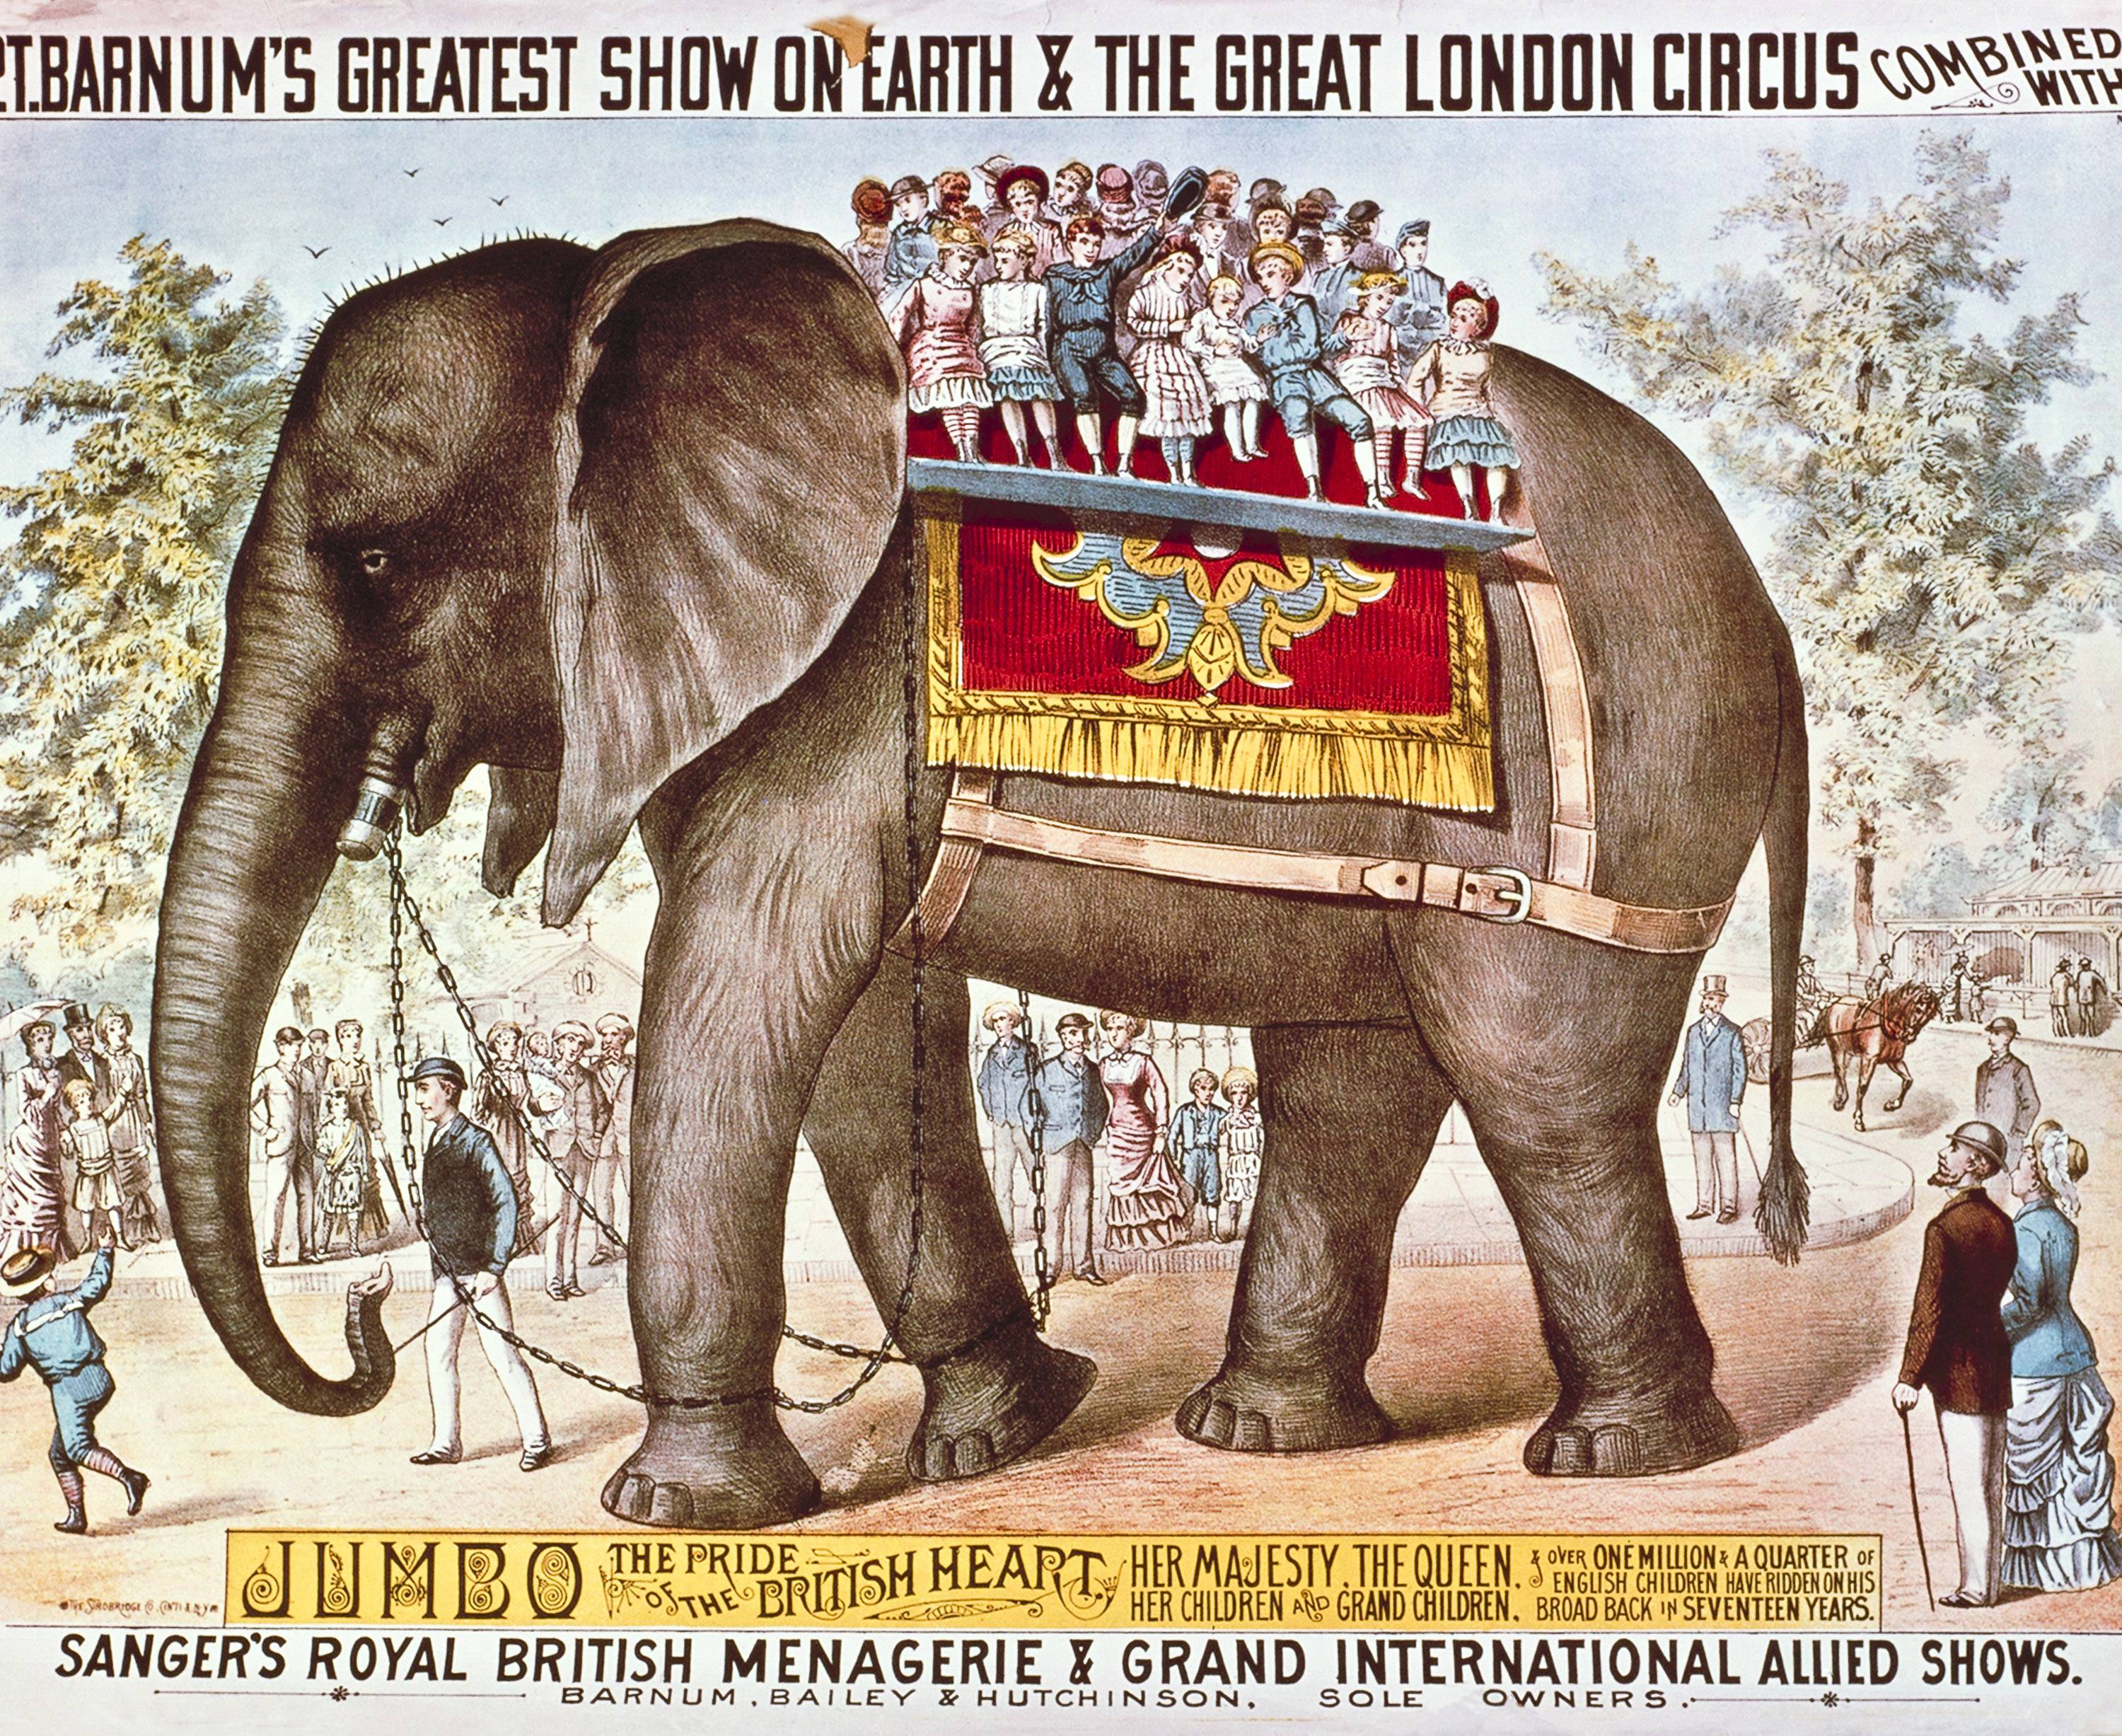 This undated poster provided by Feld Entertainment Inc., shows a poster depicting Jumbo the elephant, as part of the early days of the Ringling Bros. and Barnum & Bailey Circus.